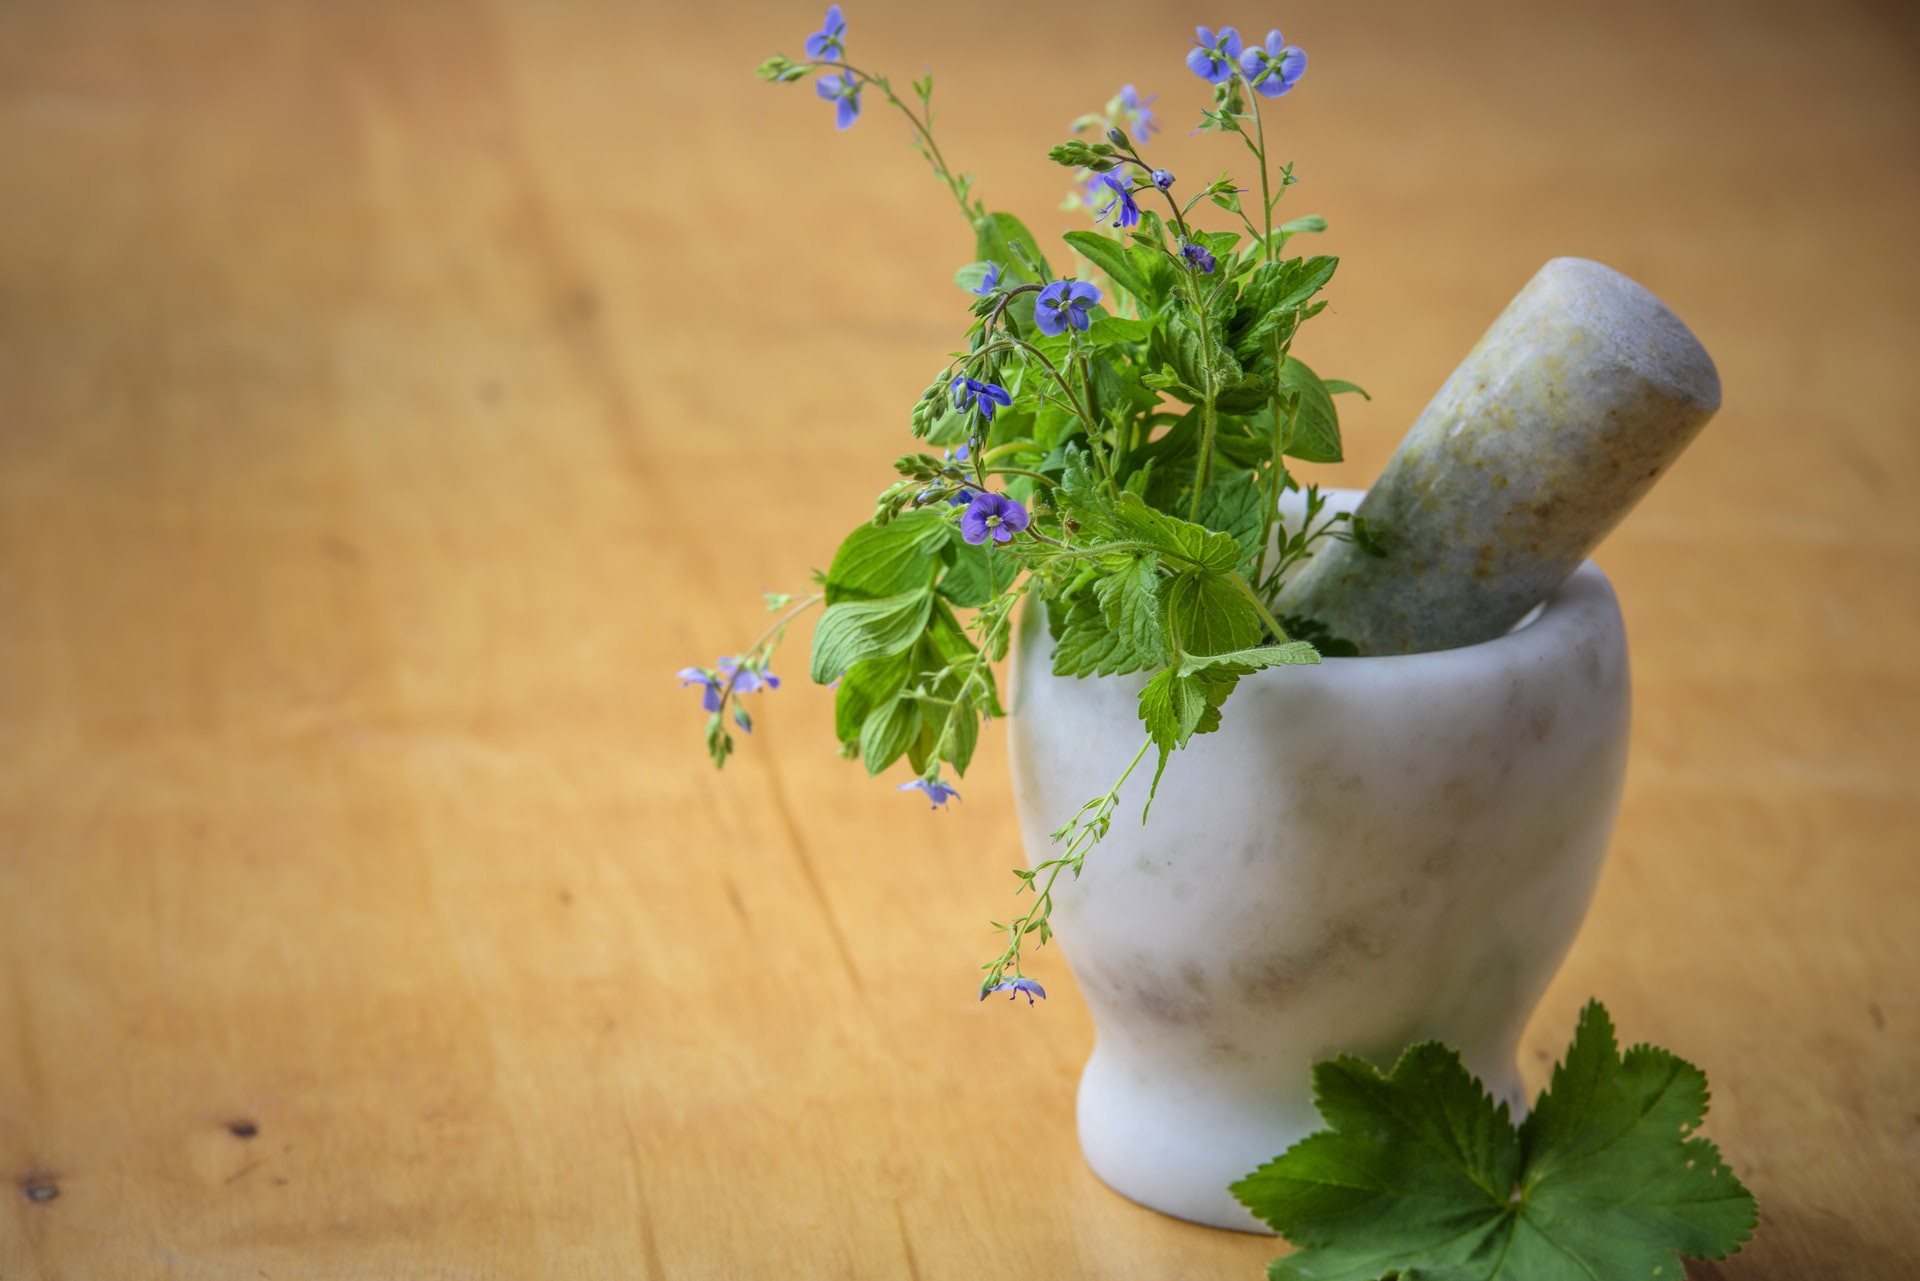 Cancer And Complementary Medicine Do Not Mix